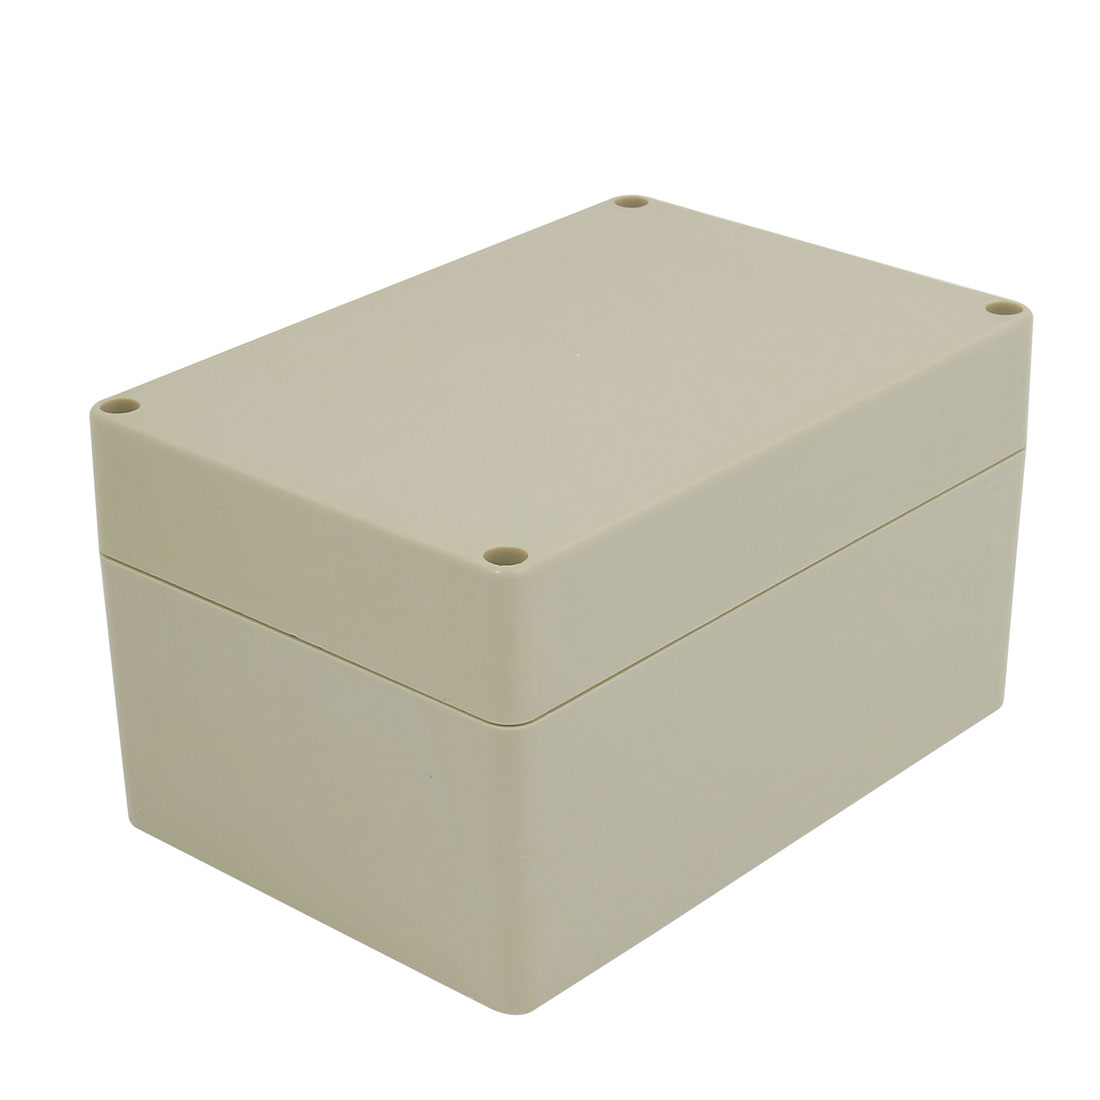 160mmx110mmx90mm Electronic ABS Plastic DIY Junction Box Enclosure Case Gray